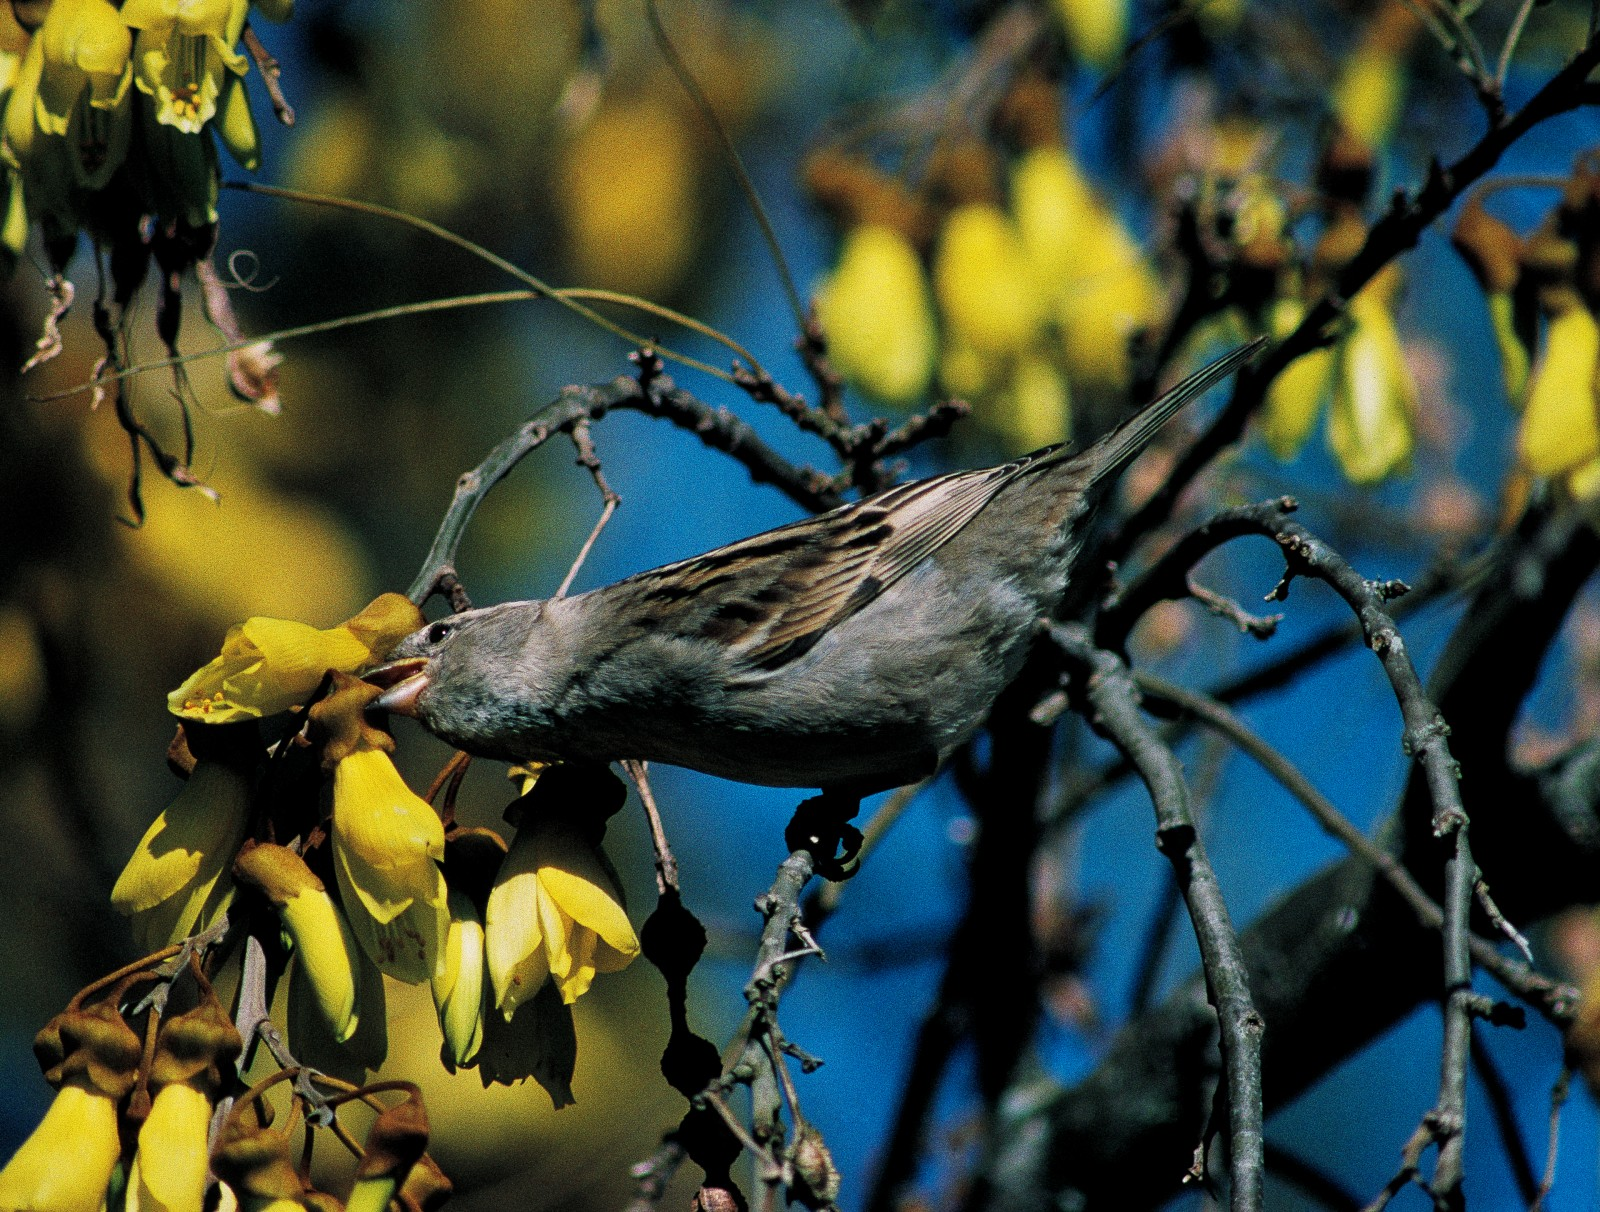 Commonest of all backyard birds is the sparrow, here seen nipping through the base of a kowhai flower to reach the nectar within. Sparrows have apparently learned the trick from silvereyes which also have beaks that are too short to reach nectar via the flower entrance in the manner of tui. Both introduced and native birds have had to adapt to the new flora that exists in suburban gardens.